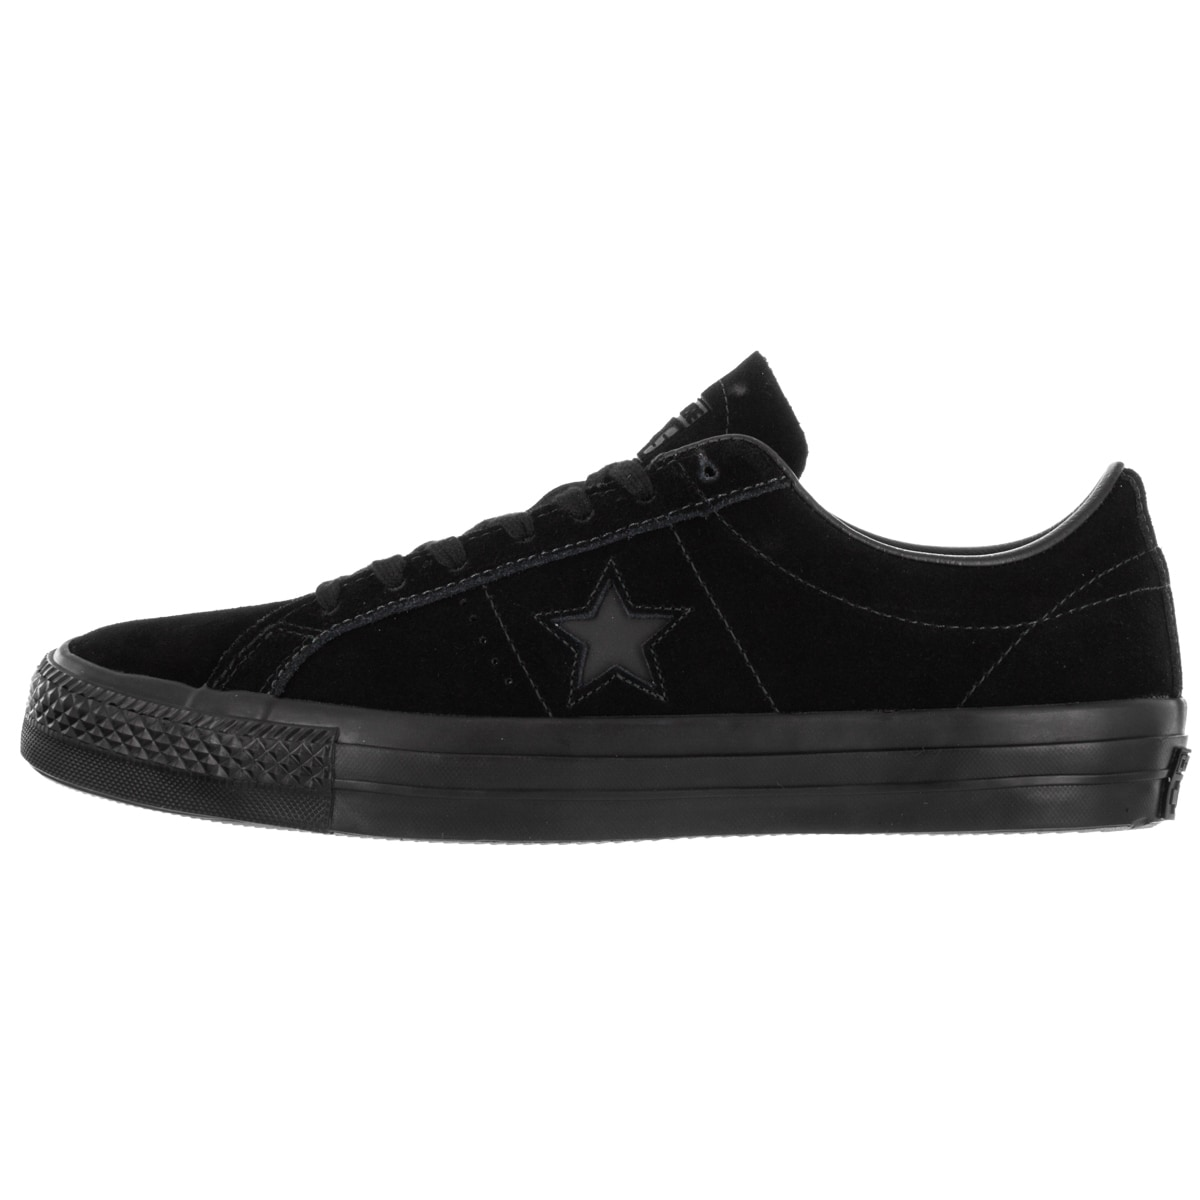 76c632afc321 Shop Converse Unisex One Star Pro Ox Black Black Skate Shoe - Free Shipping  Today - Overstock - 12319069